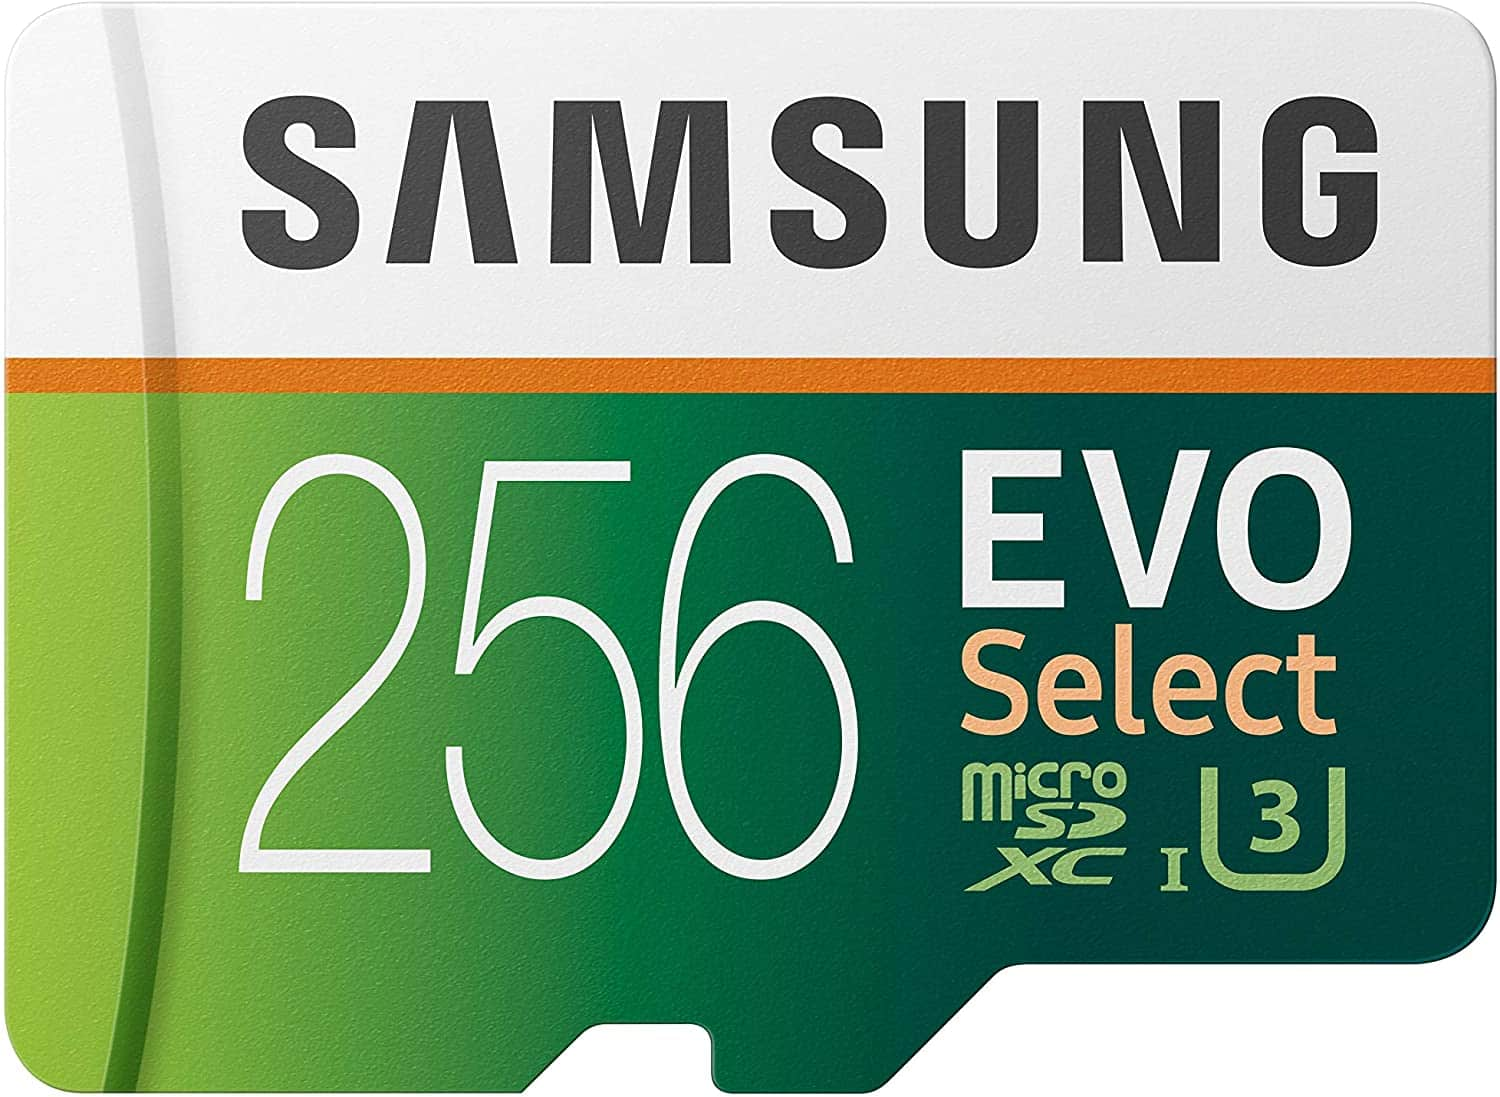 Samsung Electronics EVO Select 256GB microSDXC UHS-I U3 100MB/s Full HD & 4K UHD Memory Card with Adapter $32